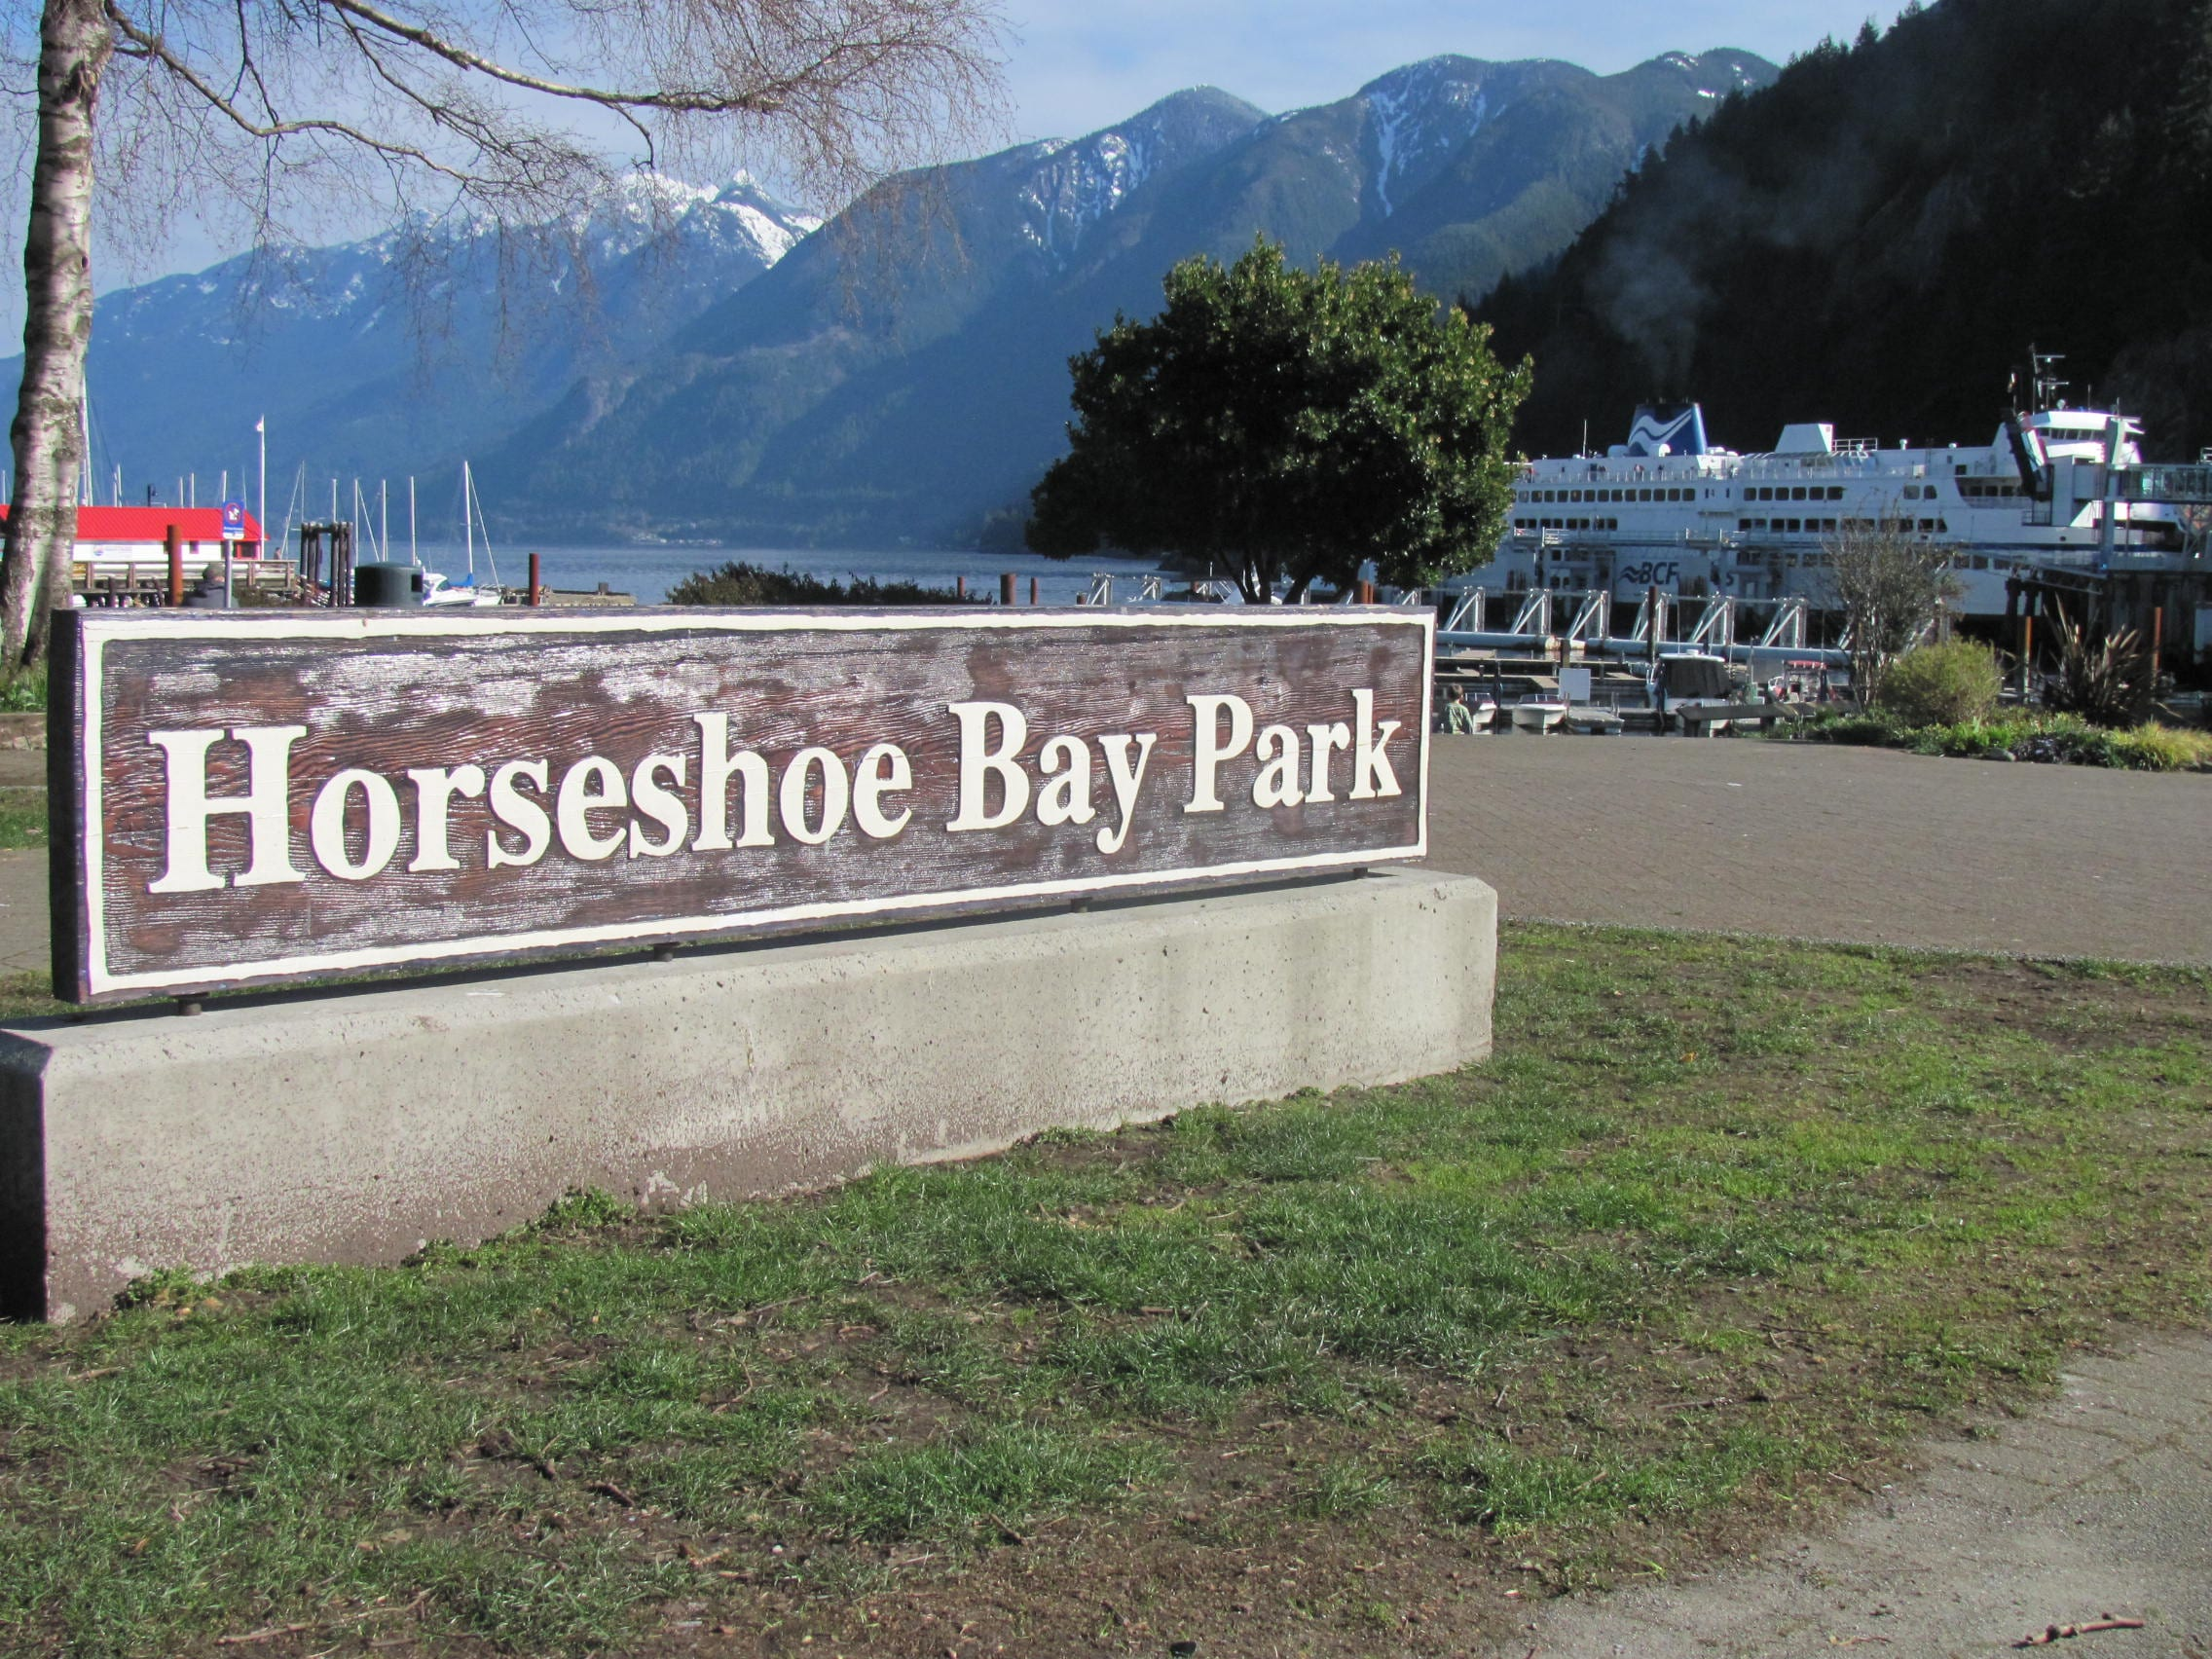 8th Annual Taste of The Bay at Horseshoe Bay Village